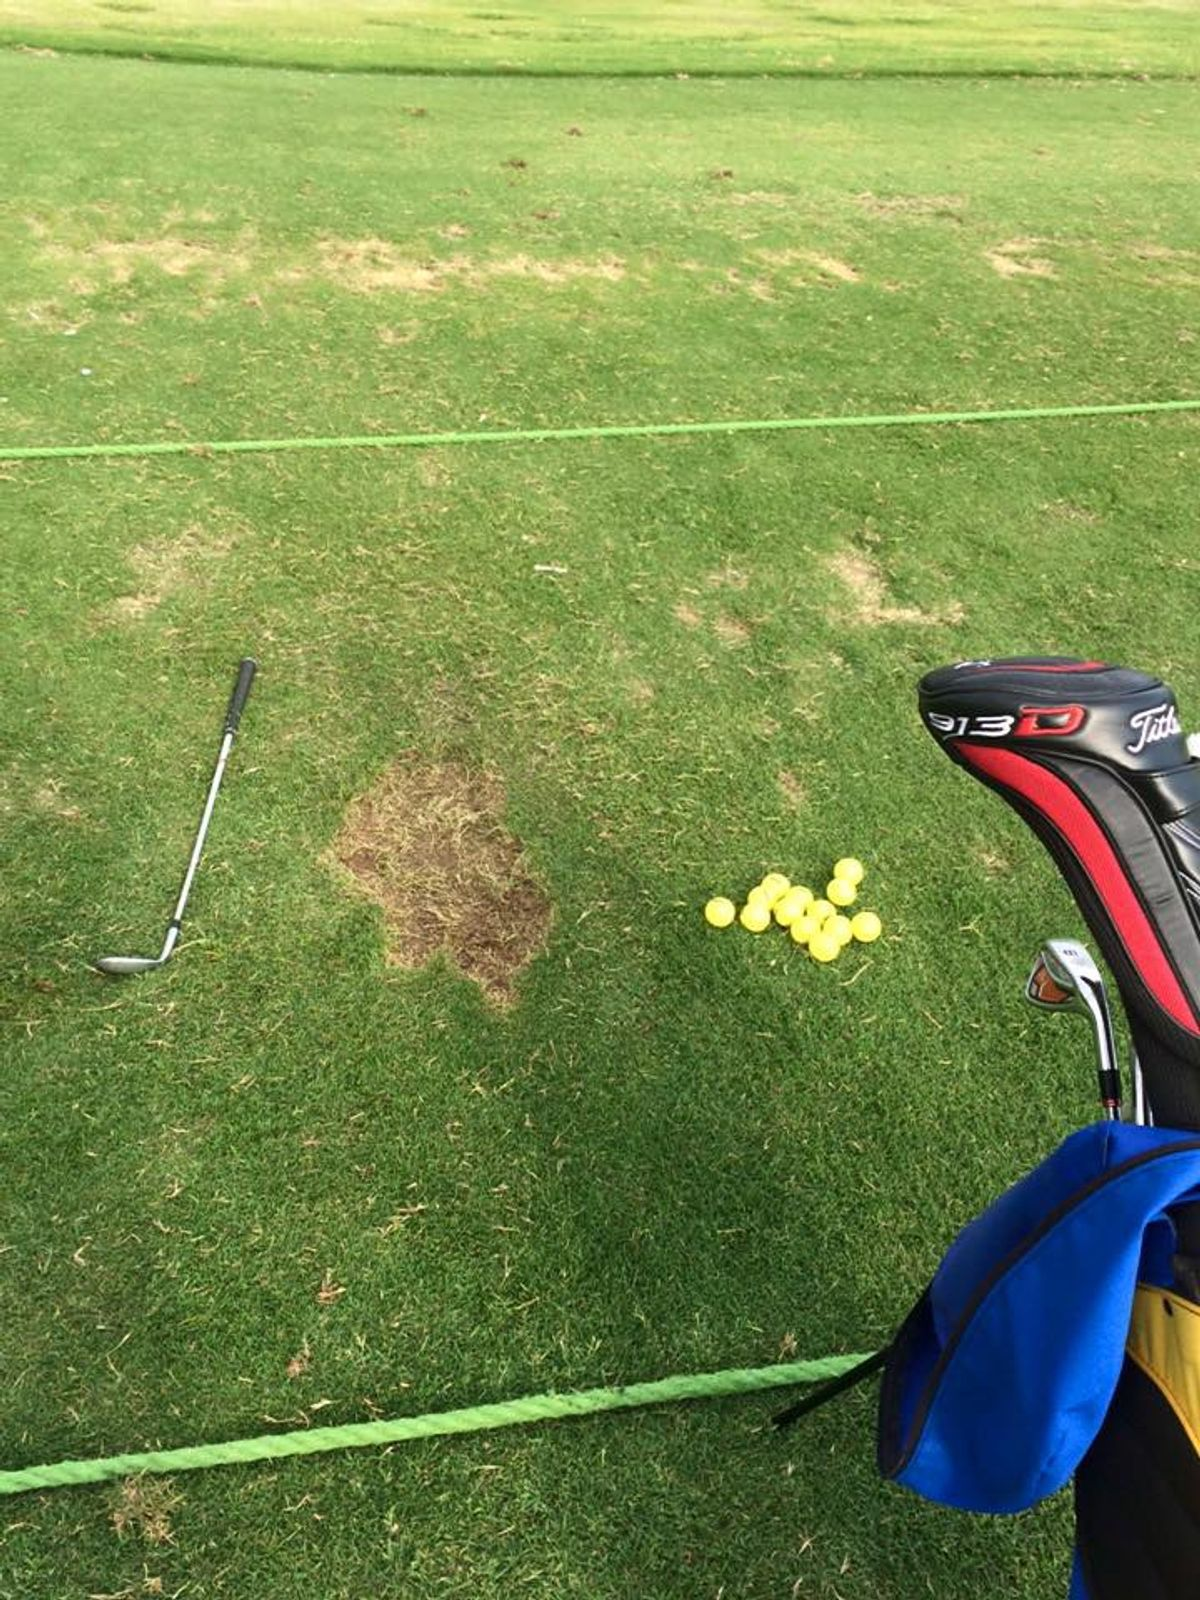 10 Things To Help You Get Ready For Golf Season